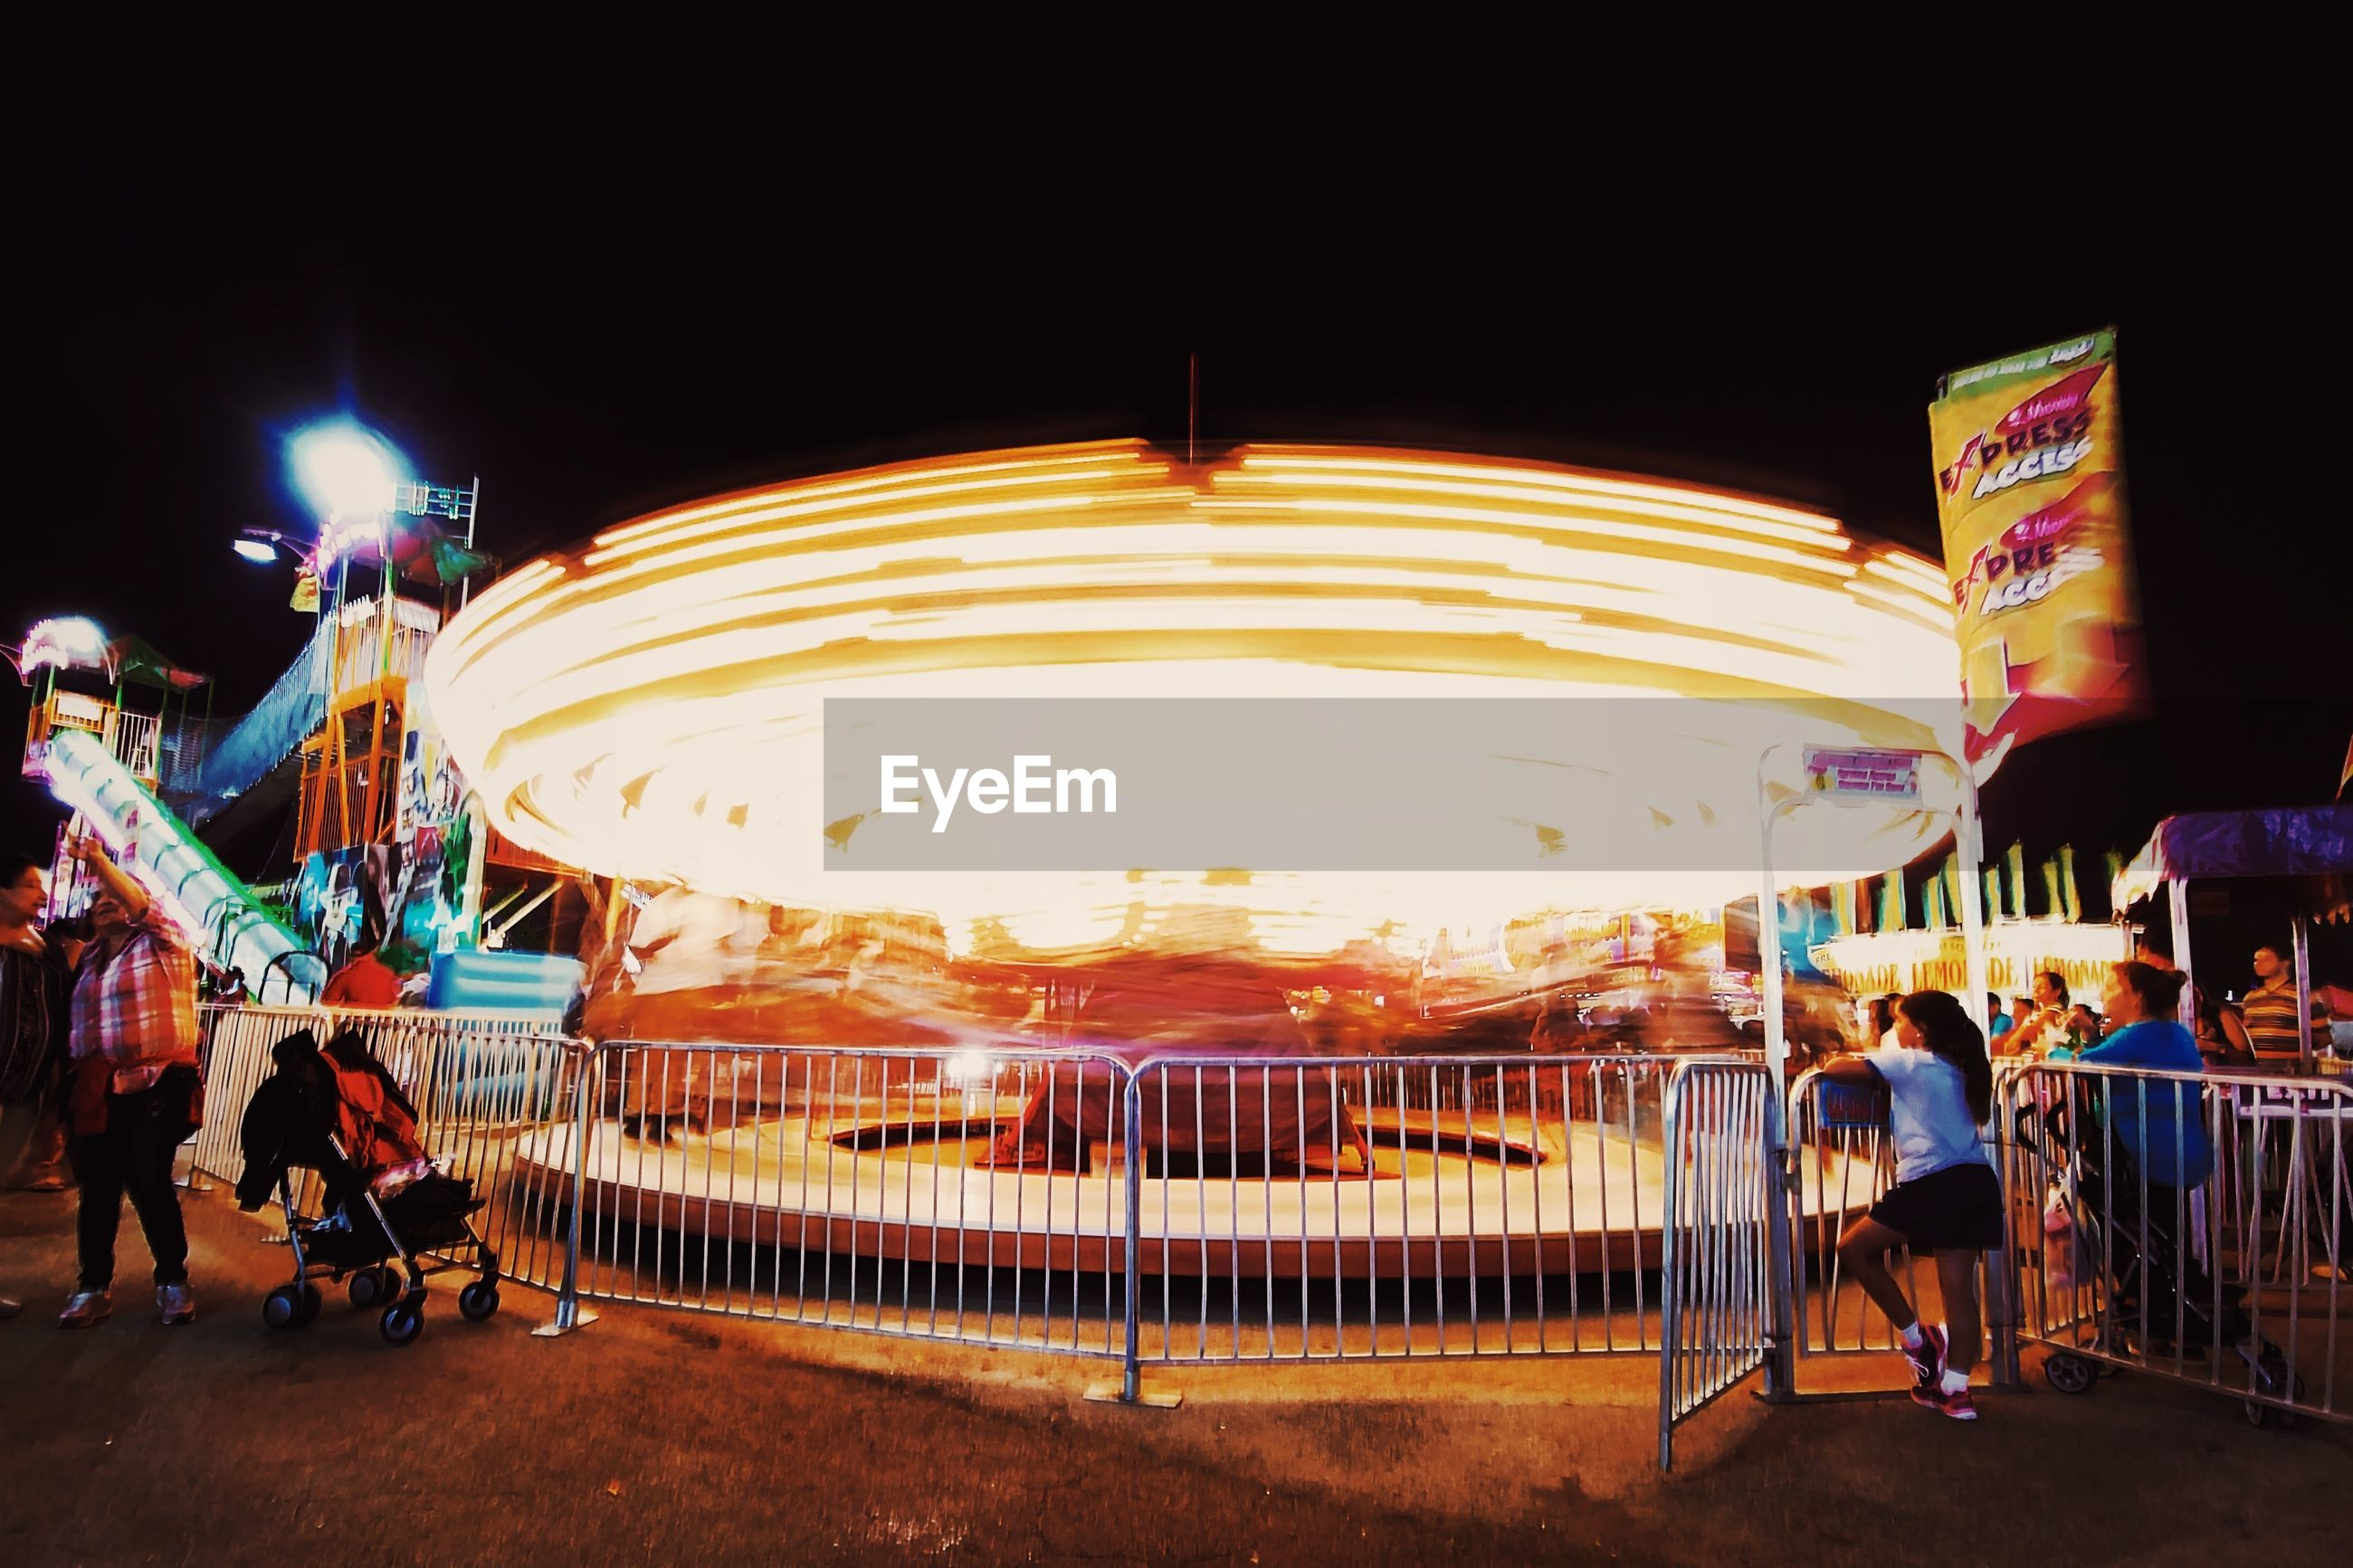 PEOPLE AT AMUSEMENT PARK RIDE AT NIGHT